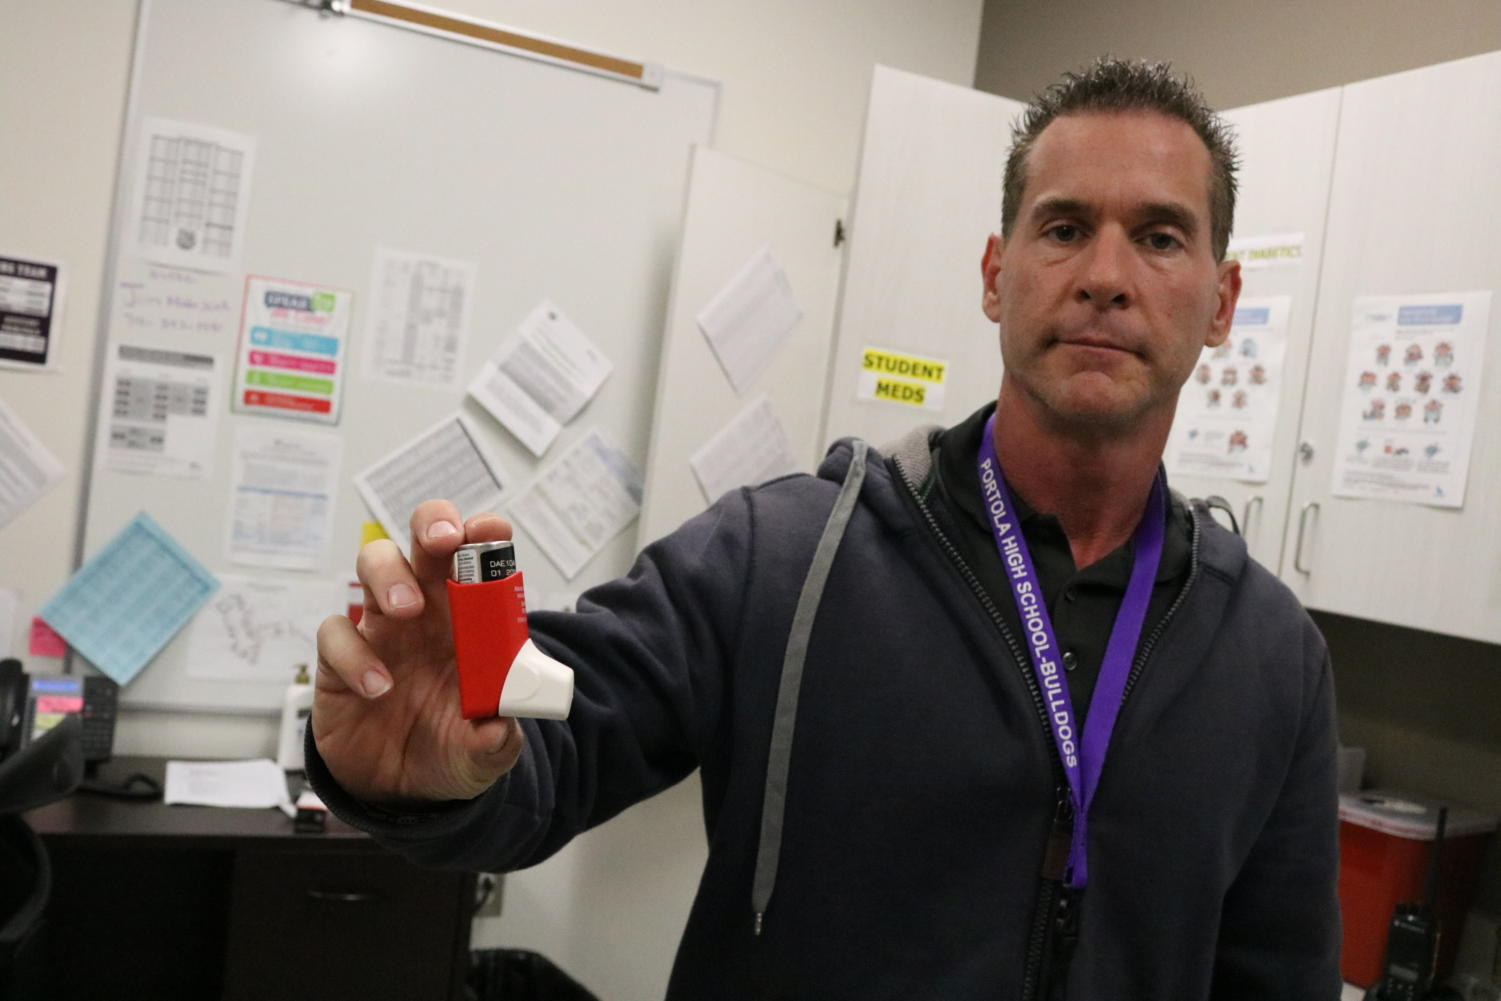 For students sensitive to the air quality, breathing devices like emergency inhalers stored in the nurse's office provide some peace of mind during an intense California fire season.